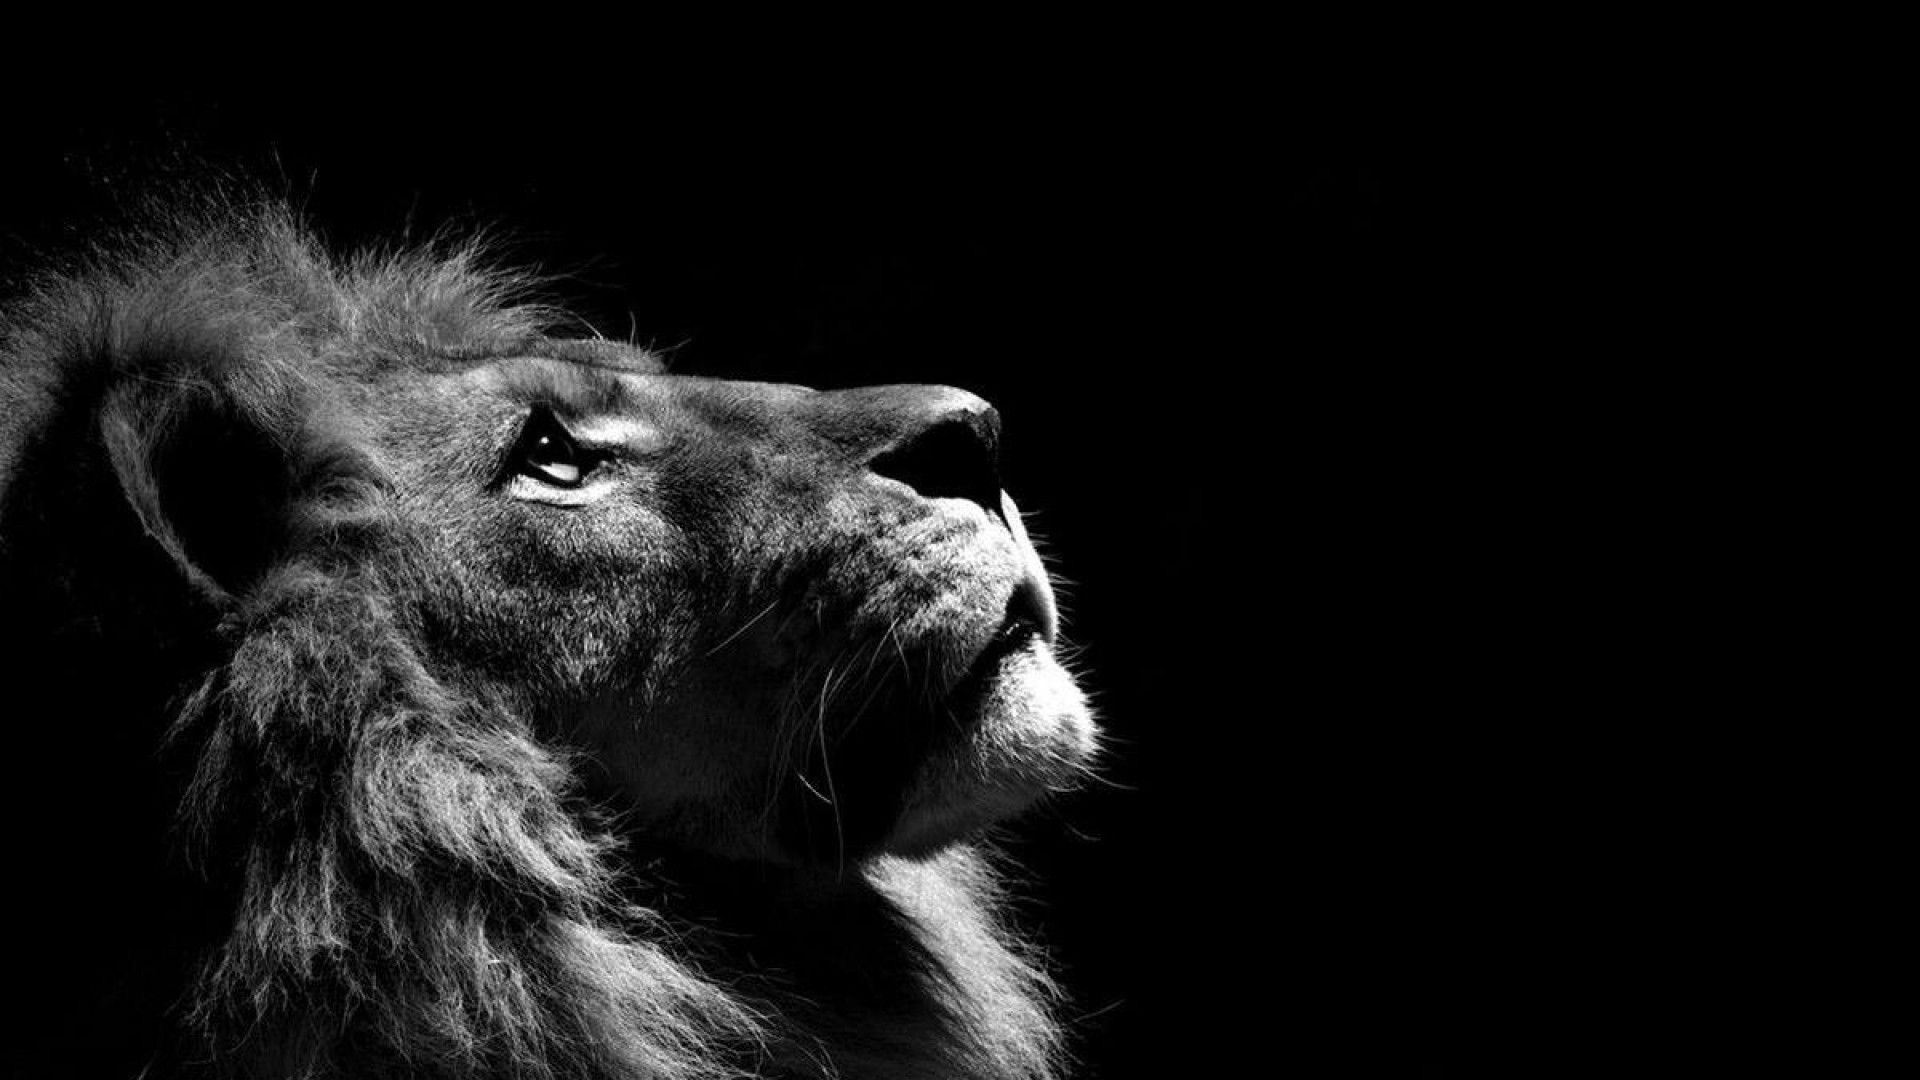 Male Lion Background Hd Wallpaper Background Hd Wallpaper Lion Wallpaper Lion Pictures